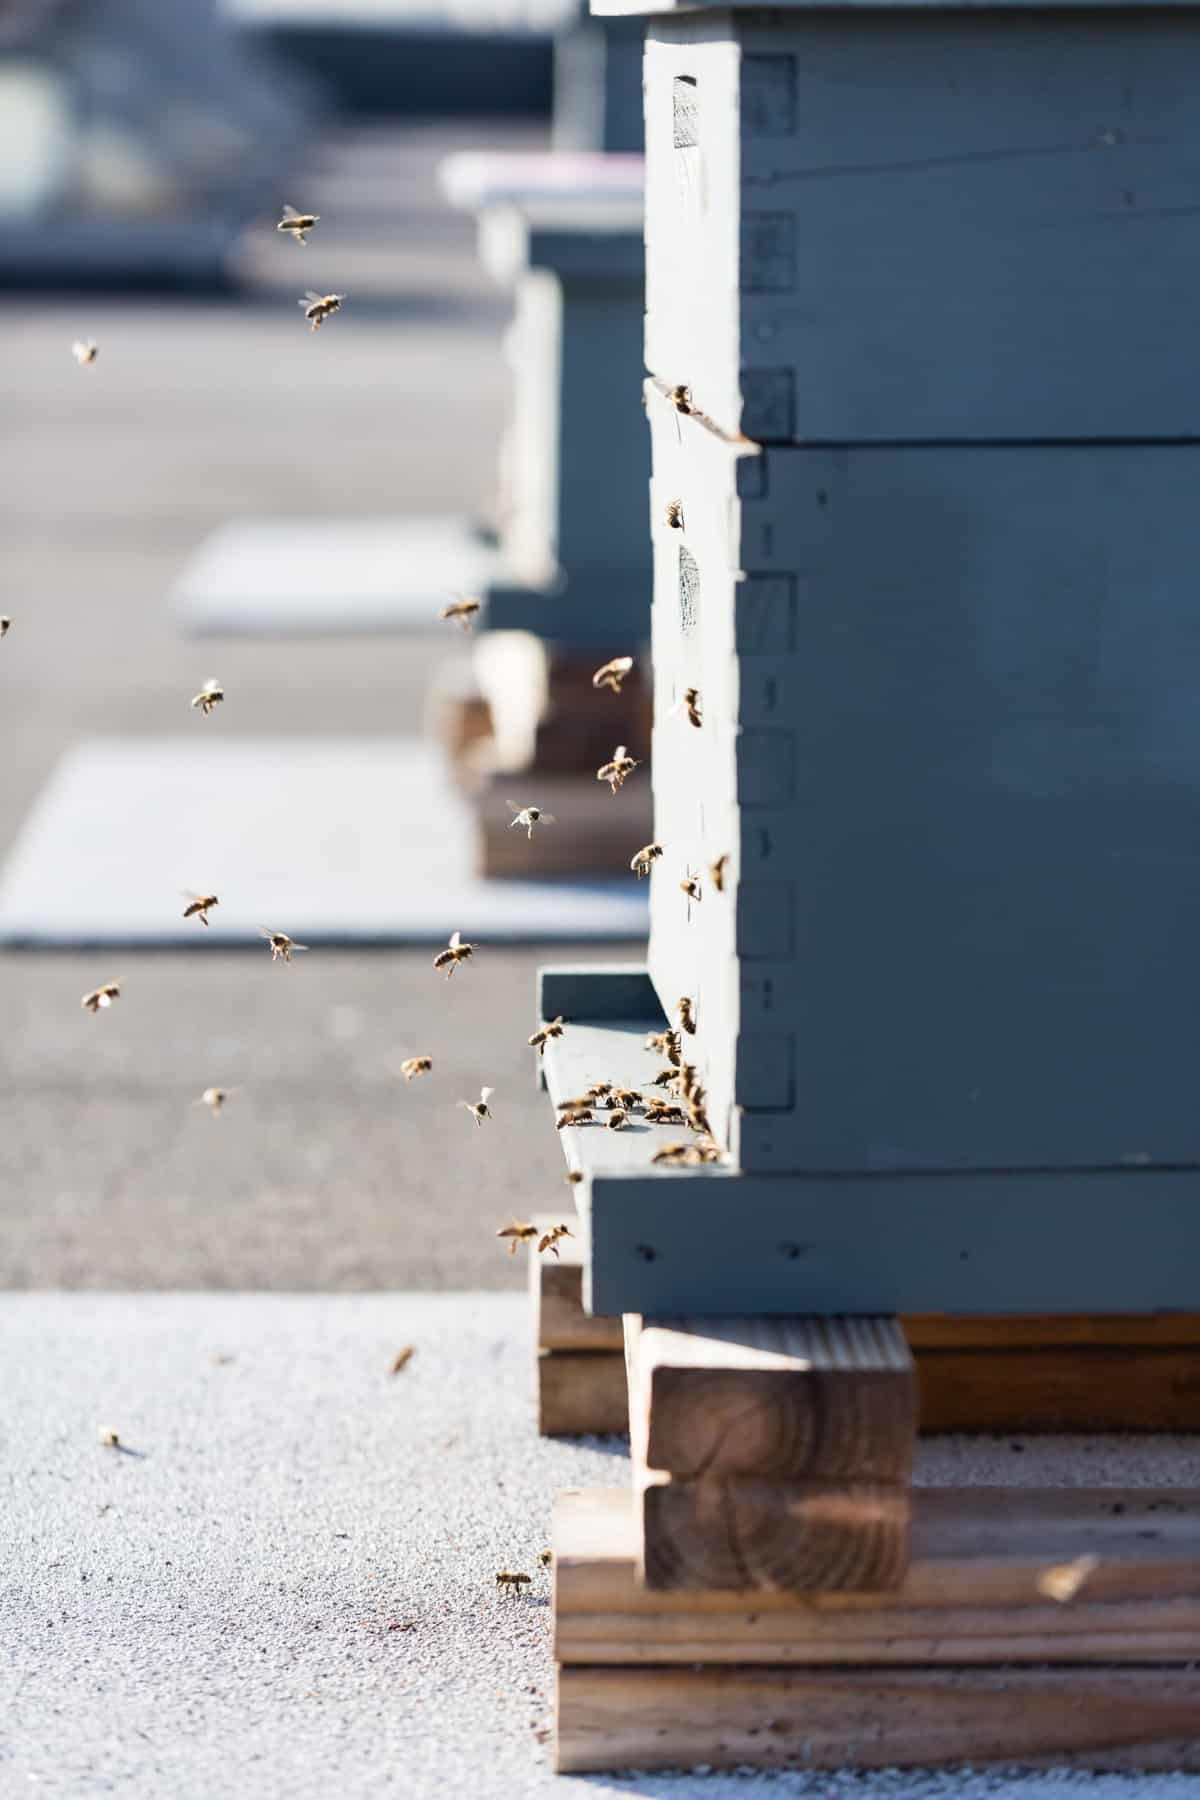 Rooftop beehive in San Francisco